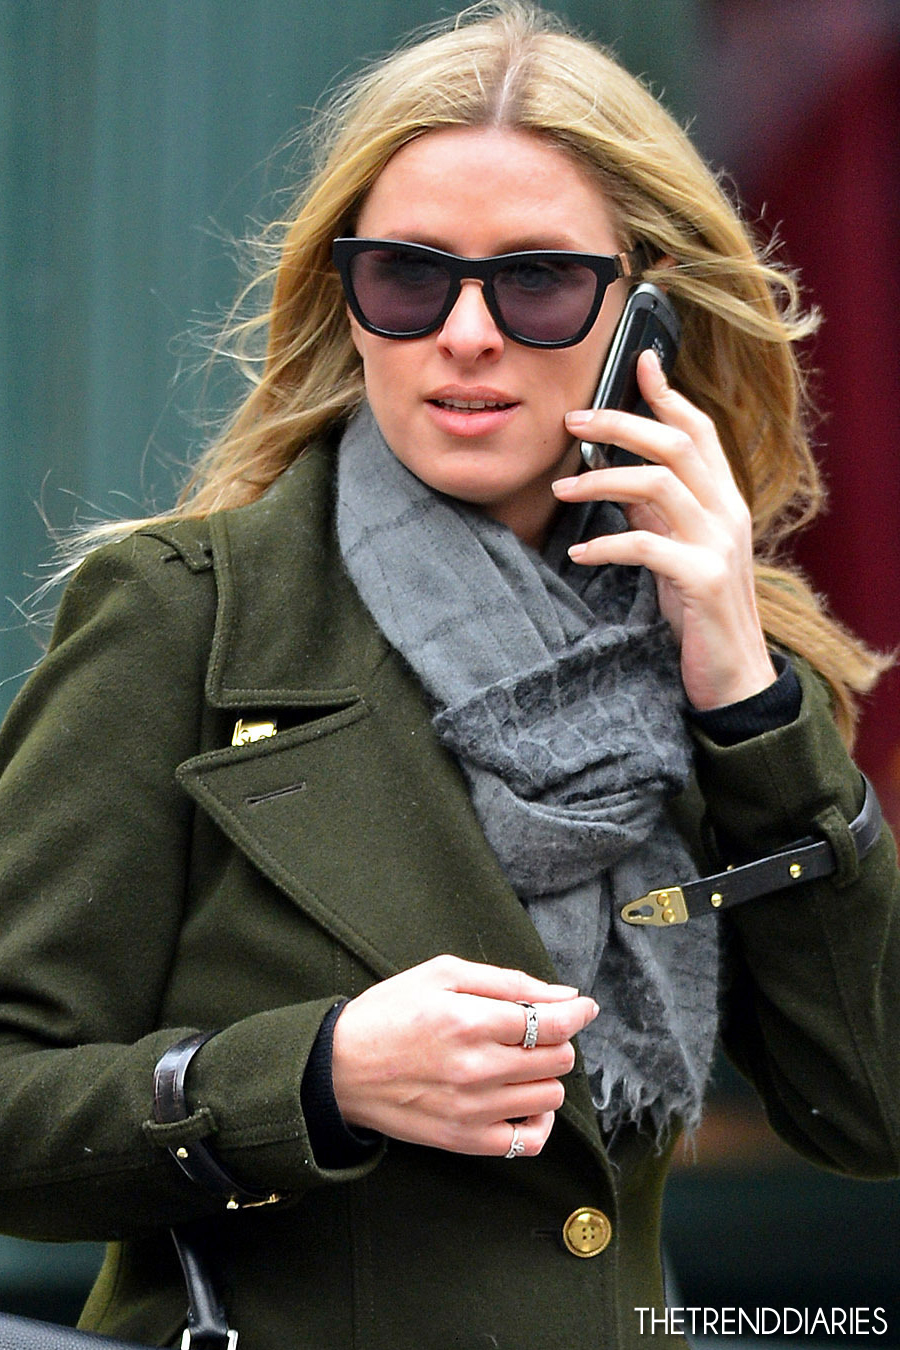 nickyhilton_february72013www.thetrenddiaries.com